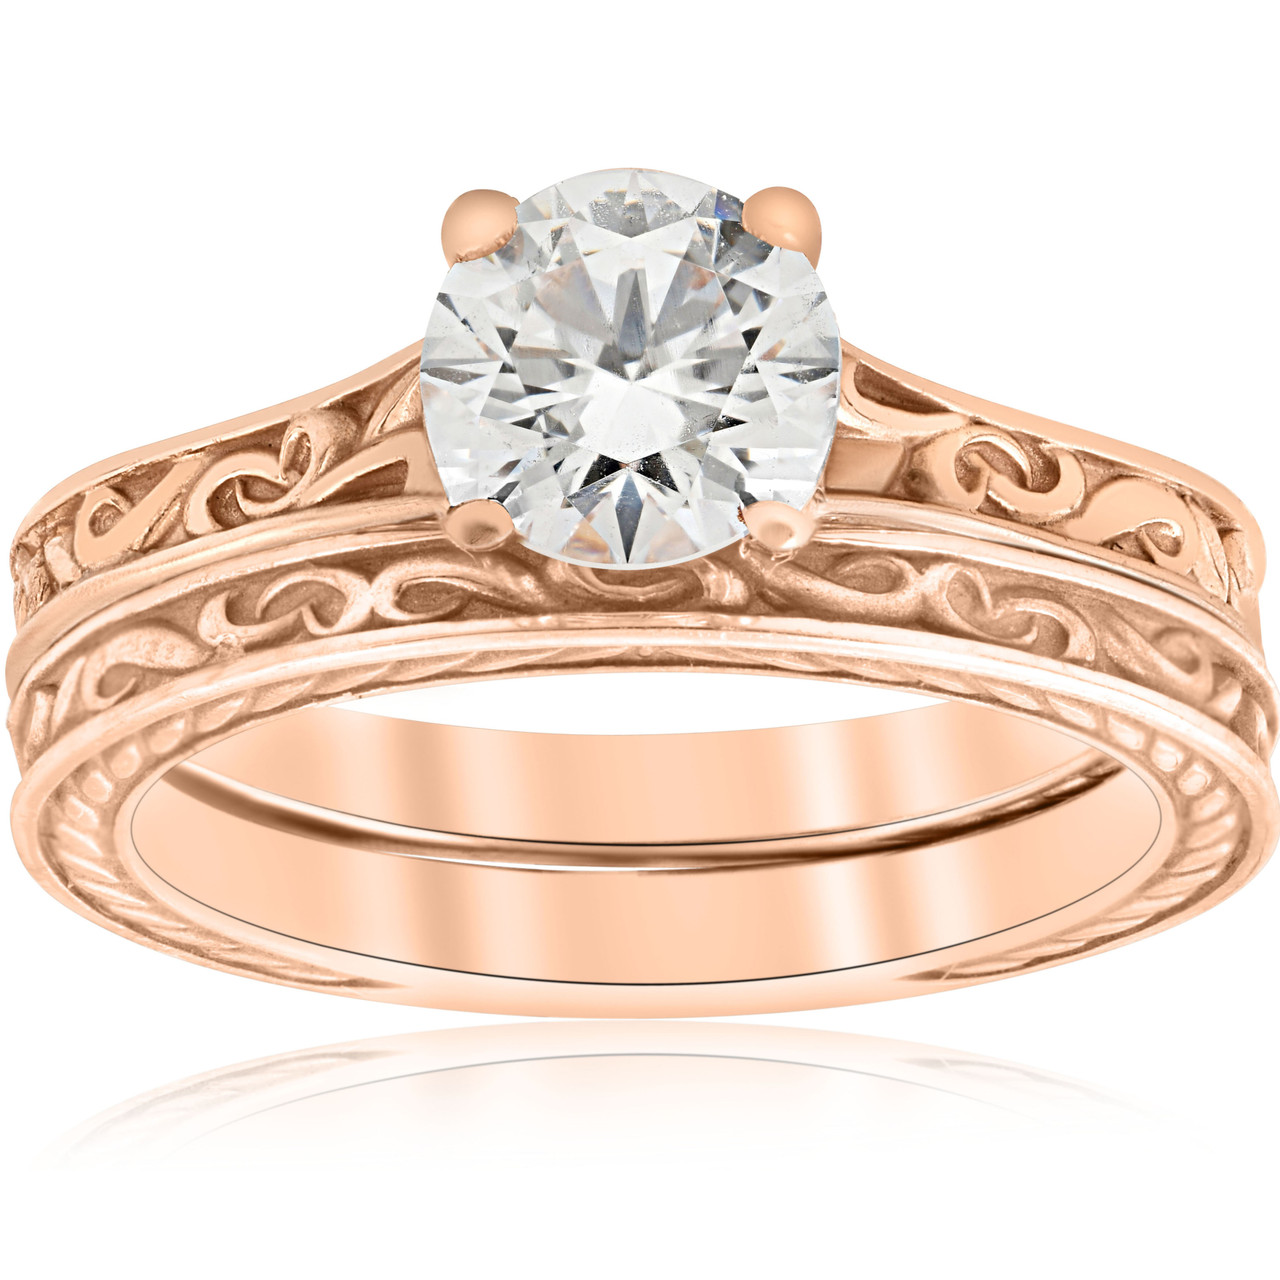 1ct Diamond Solitaire 14k Rose Gold Vintage Engagement Ring Wedding Band